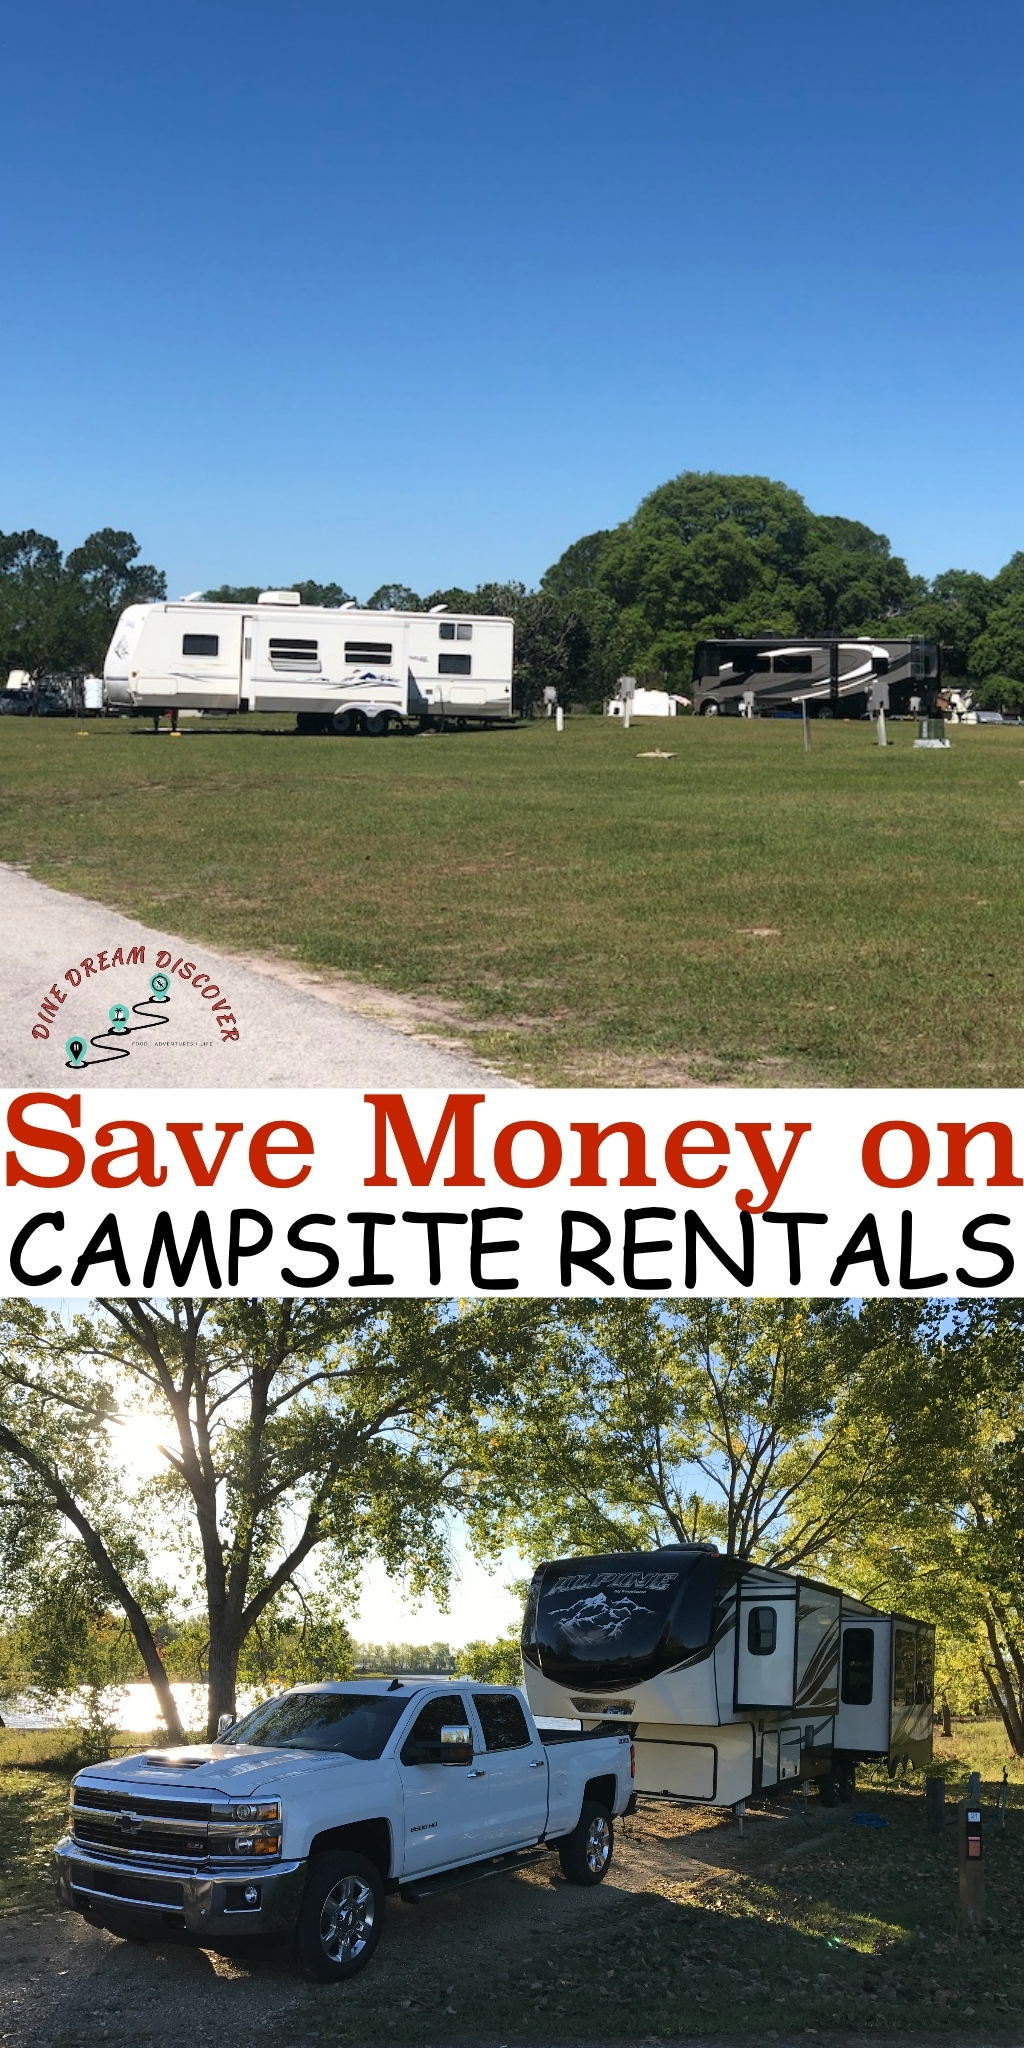 Check out our 6 ways to save money on campsite rentals, so you can sleep under the stars for less.